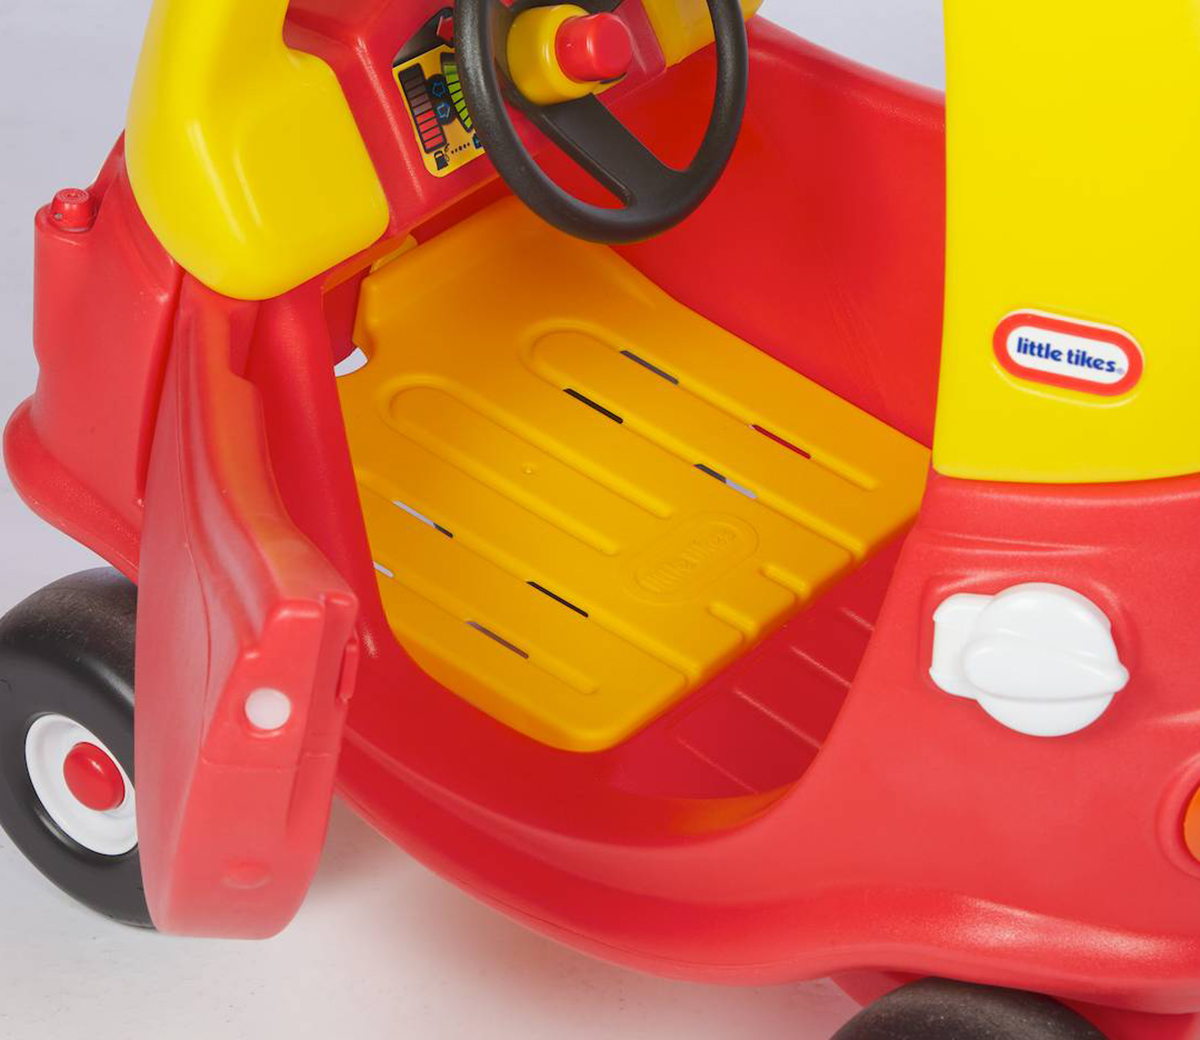 Little Tikes Cozy Coupe Floorboard Online